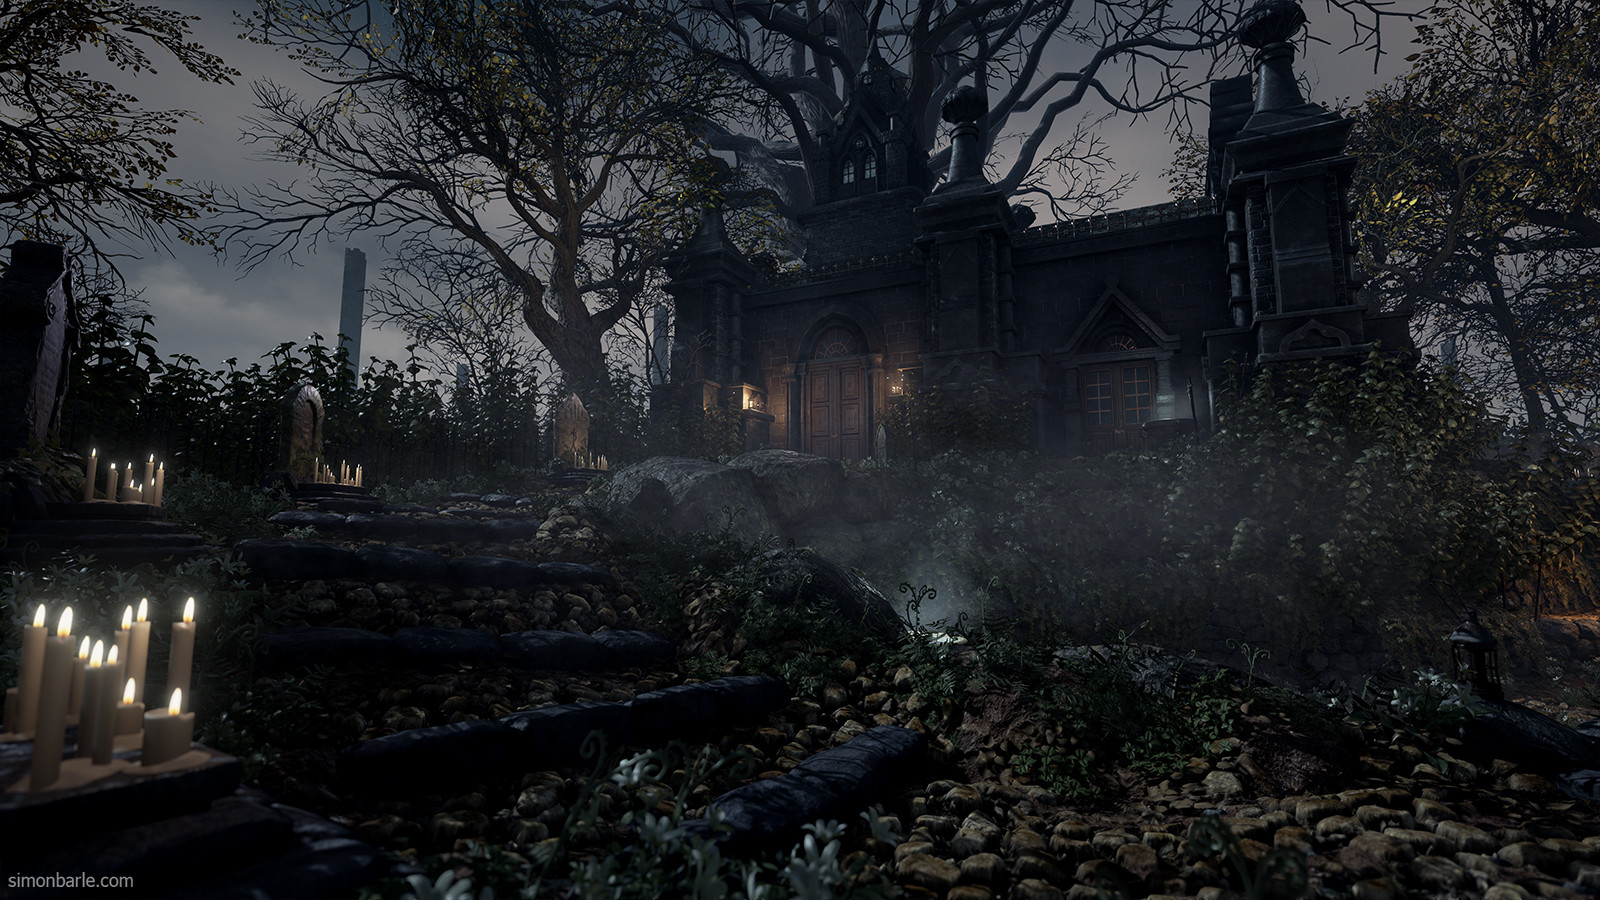 Stunning Fall Wallpapers Bloodborne Recreated In Unreal Engine 4 Looks Stunning Vg247